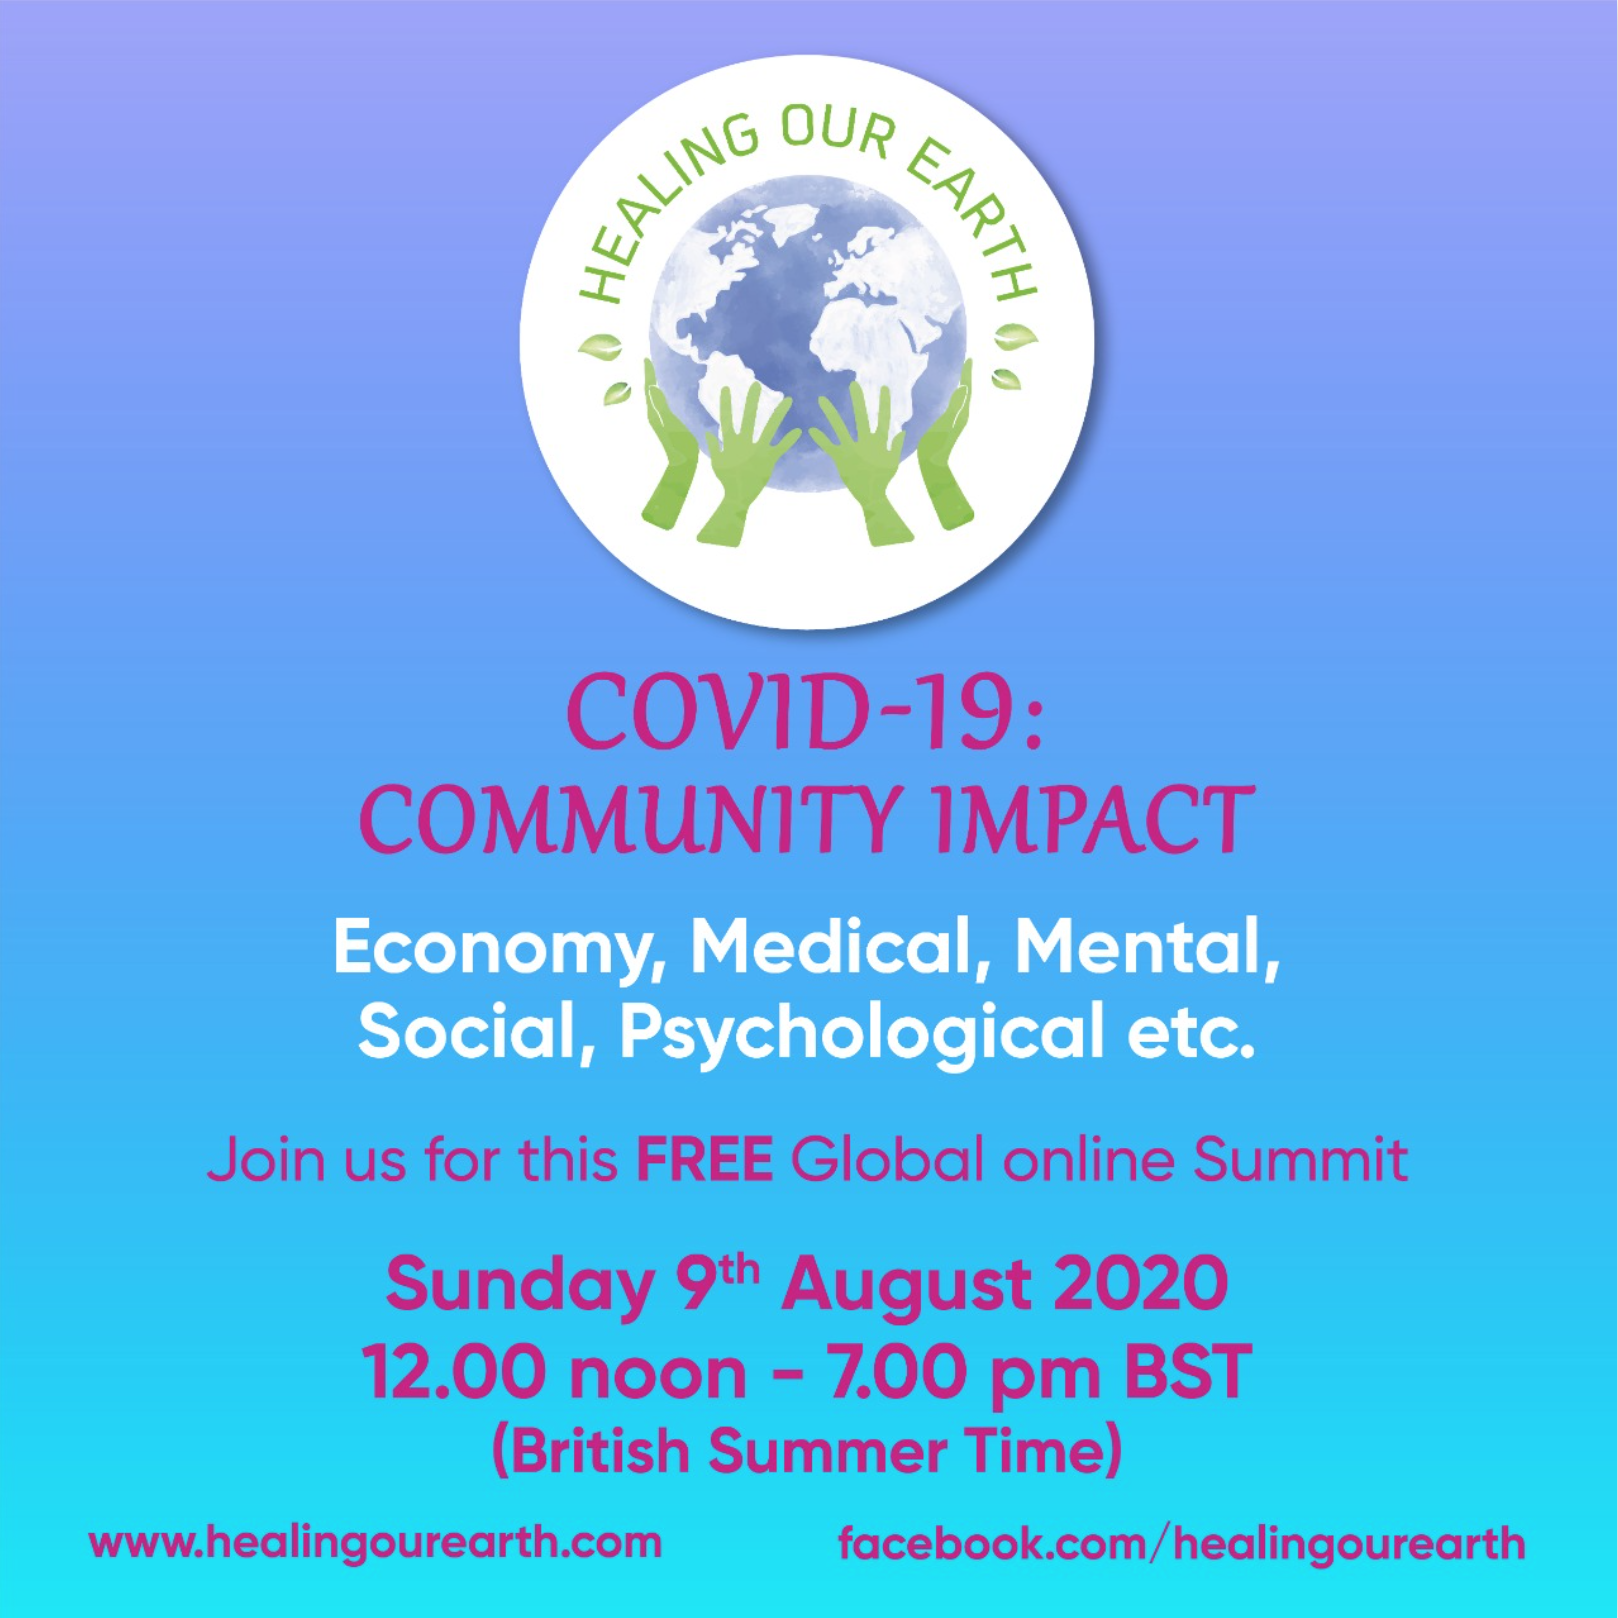 Covid-19 Community Impact. Economy, Medical, Mental, Social, Psychological, etc.